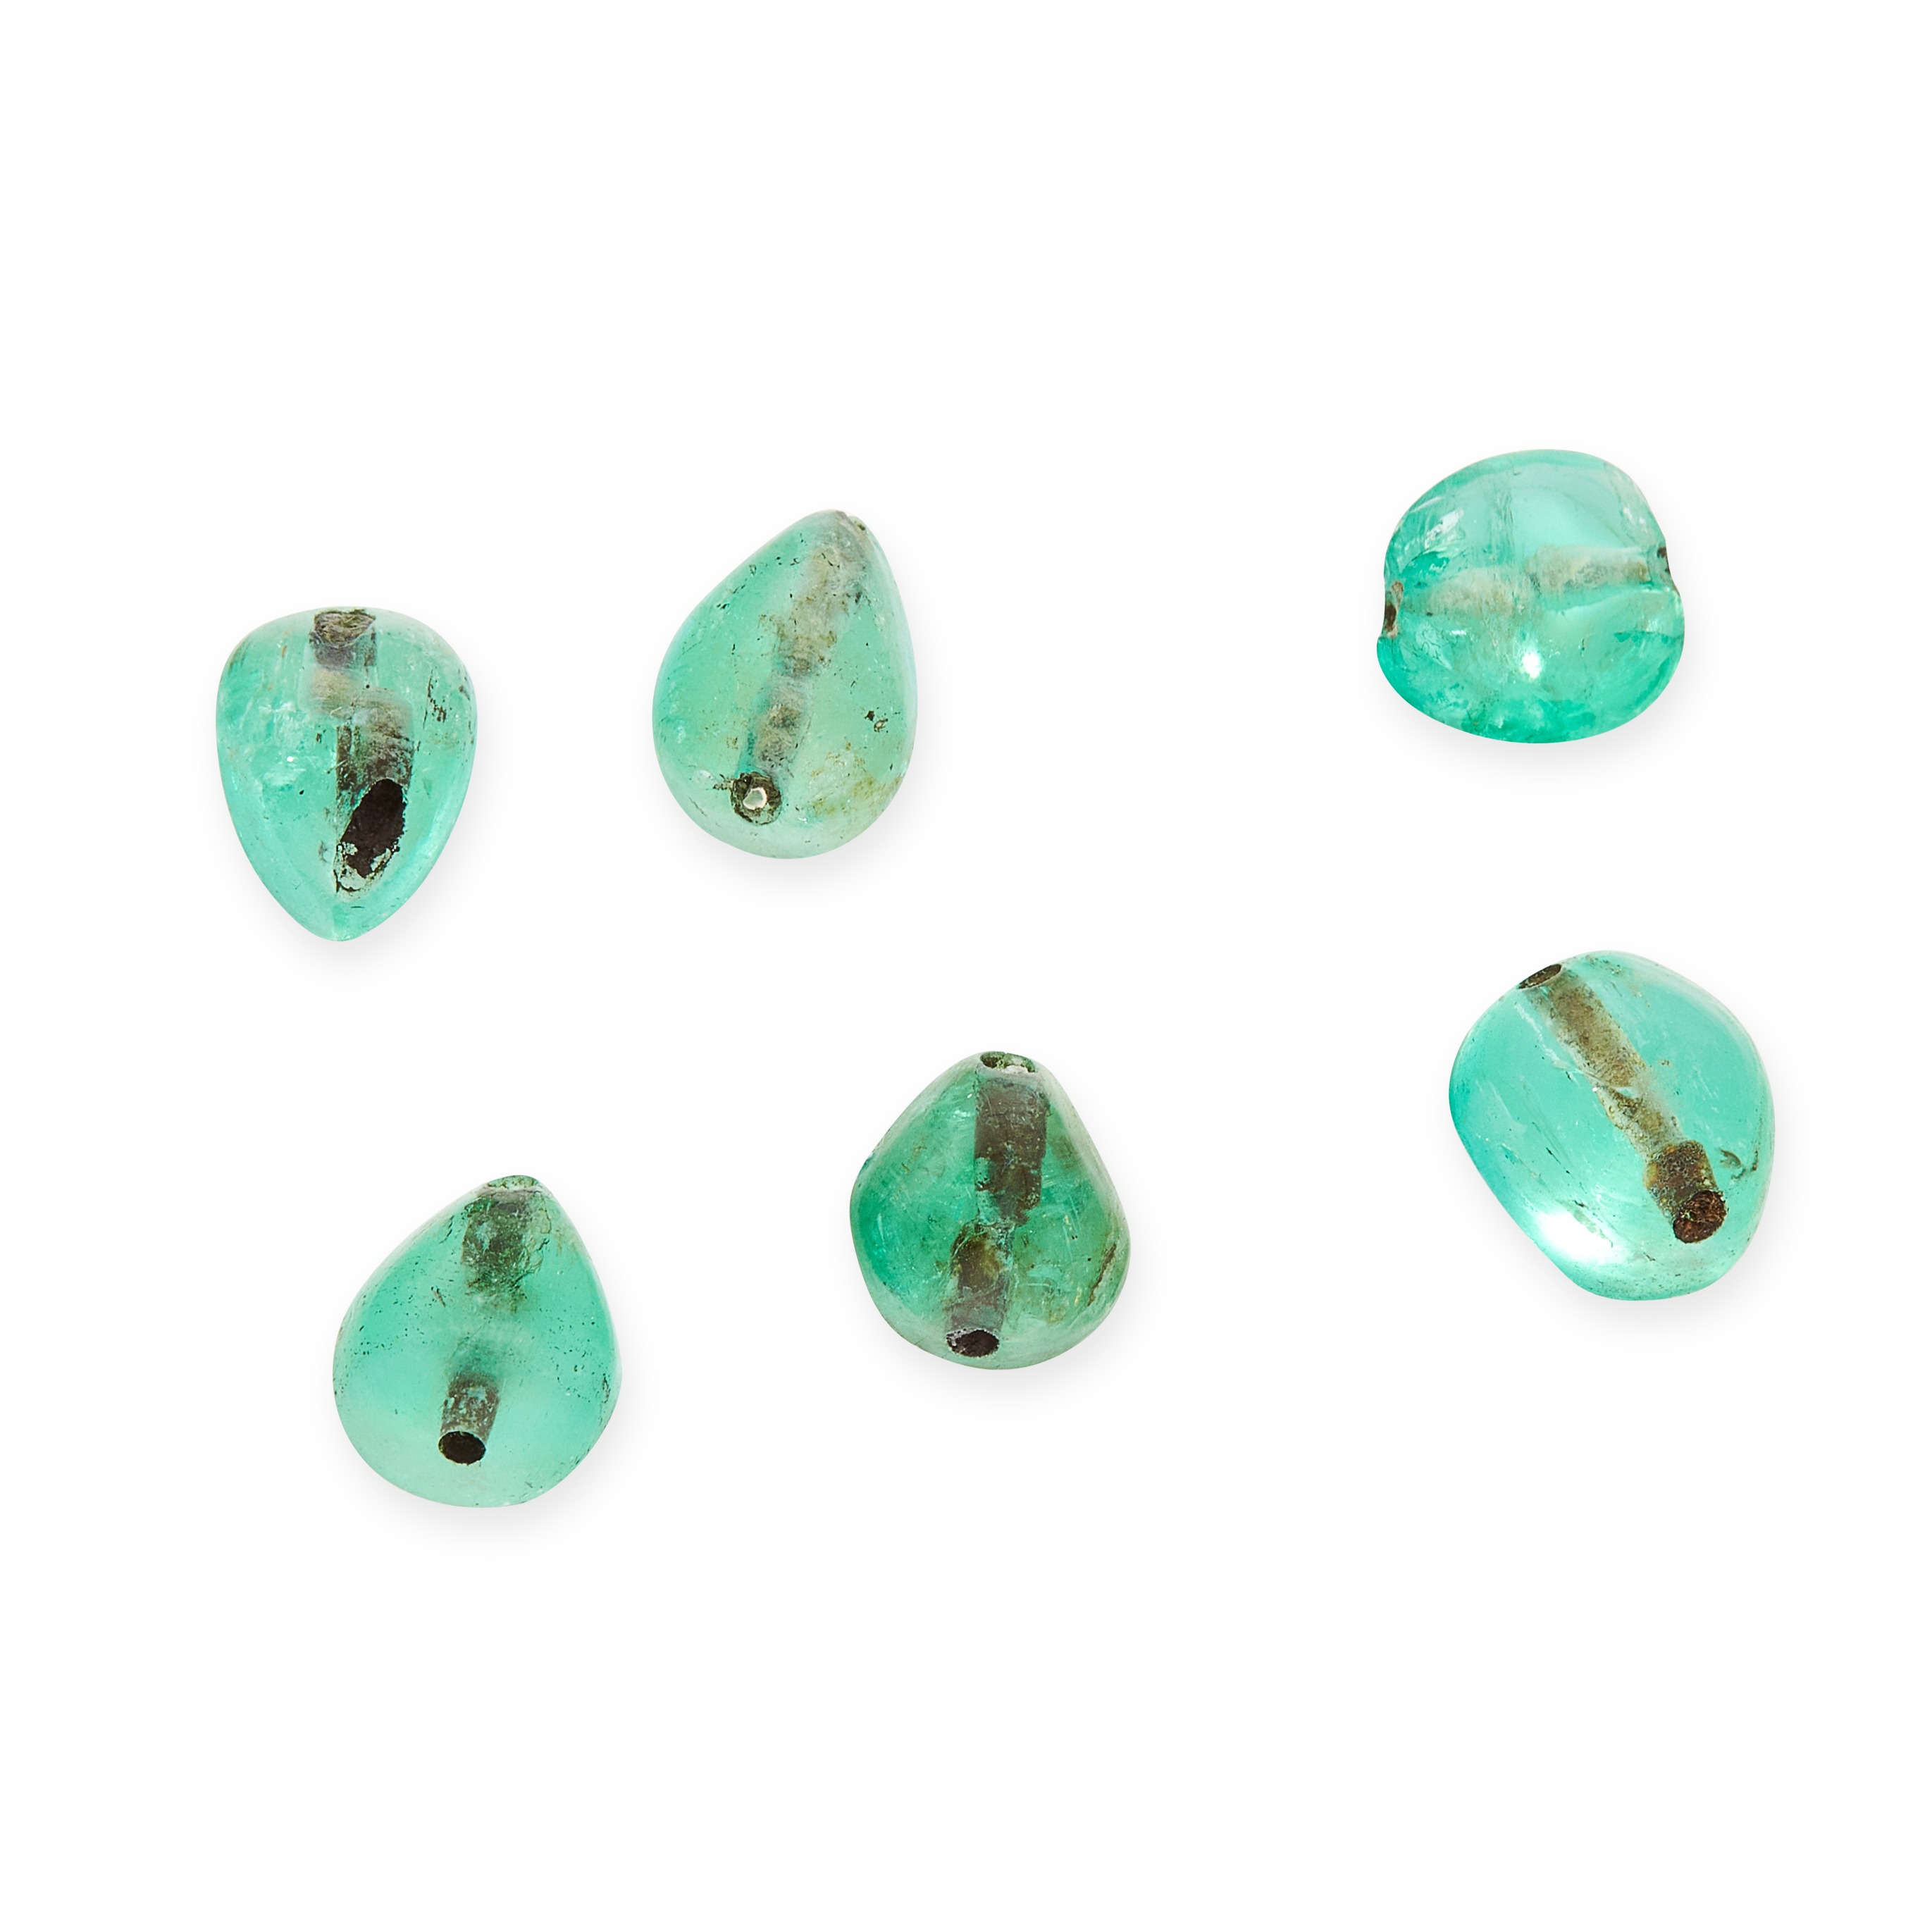 A MIXED LOT OF EMERALD BEADS totalling 7.19 carats.